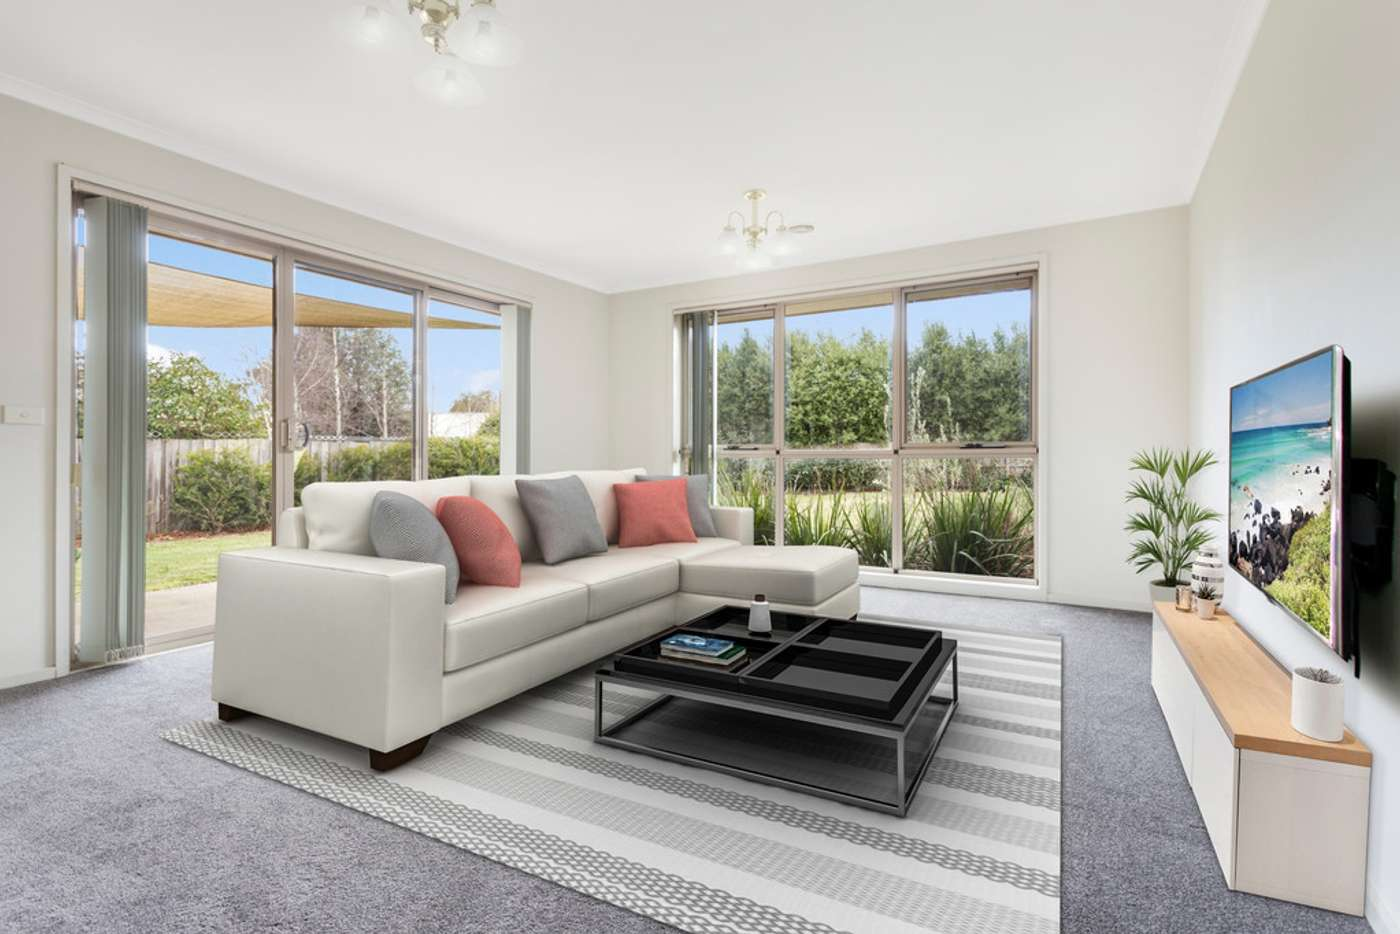 Main view of Homely house listing, 2 Sunny Park Close, Gisborne VIC 3437